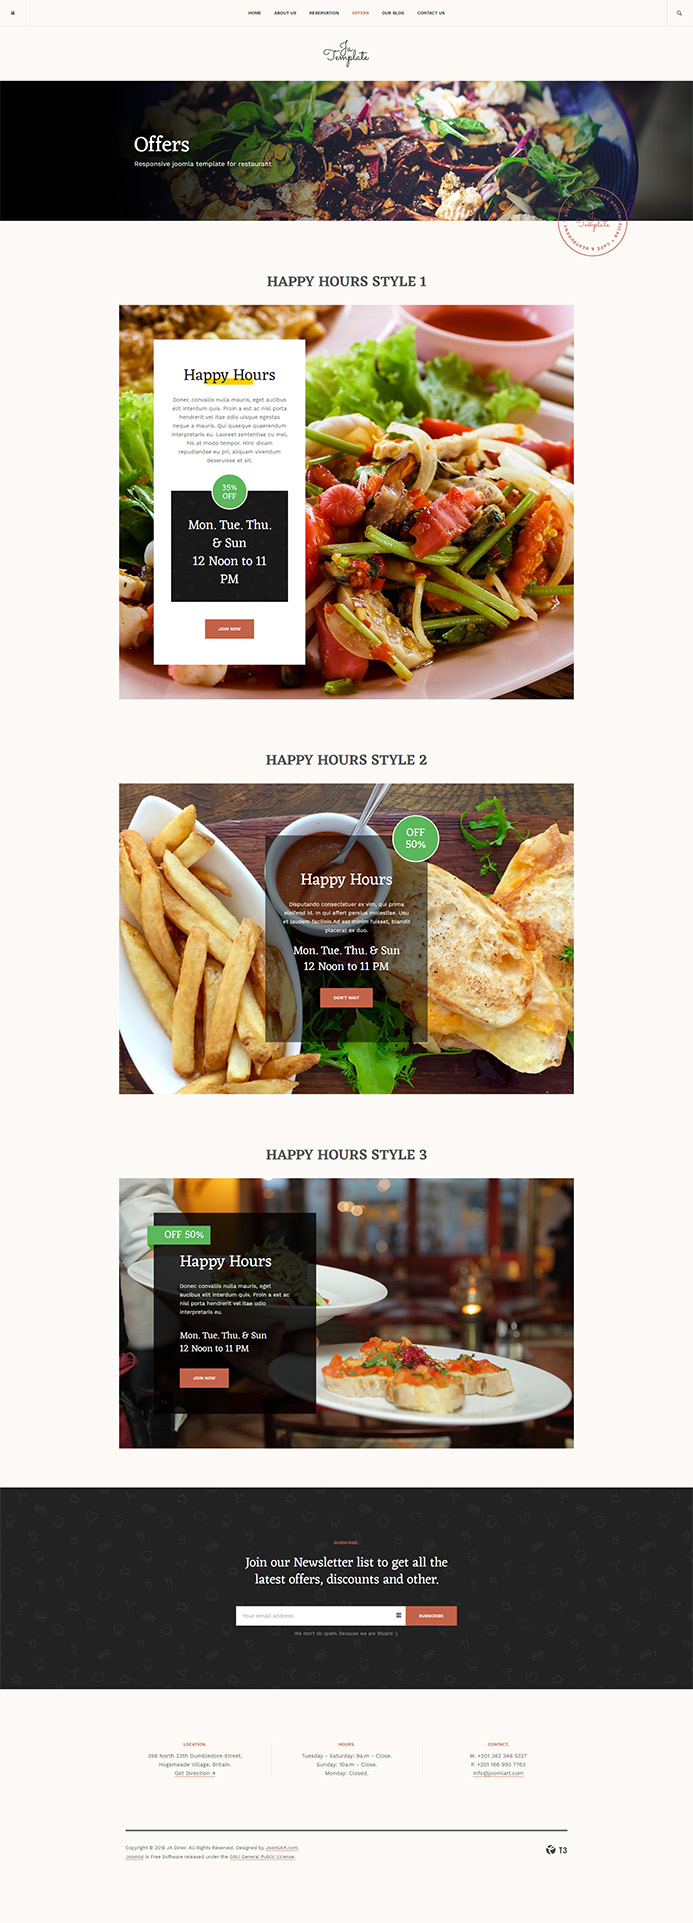 Restaurant joomla template offer page JA Diner